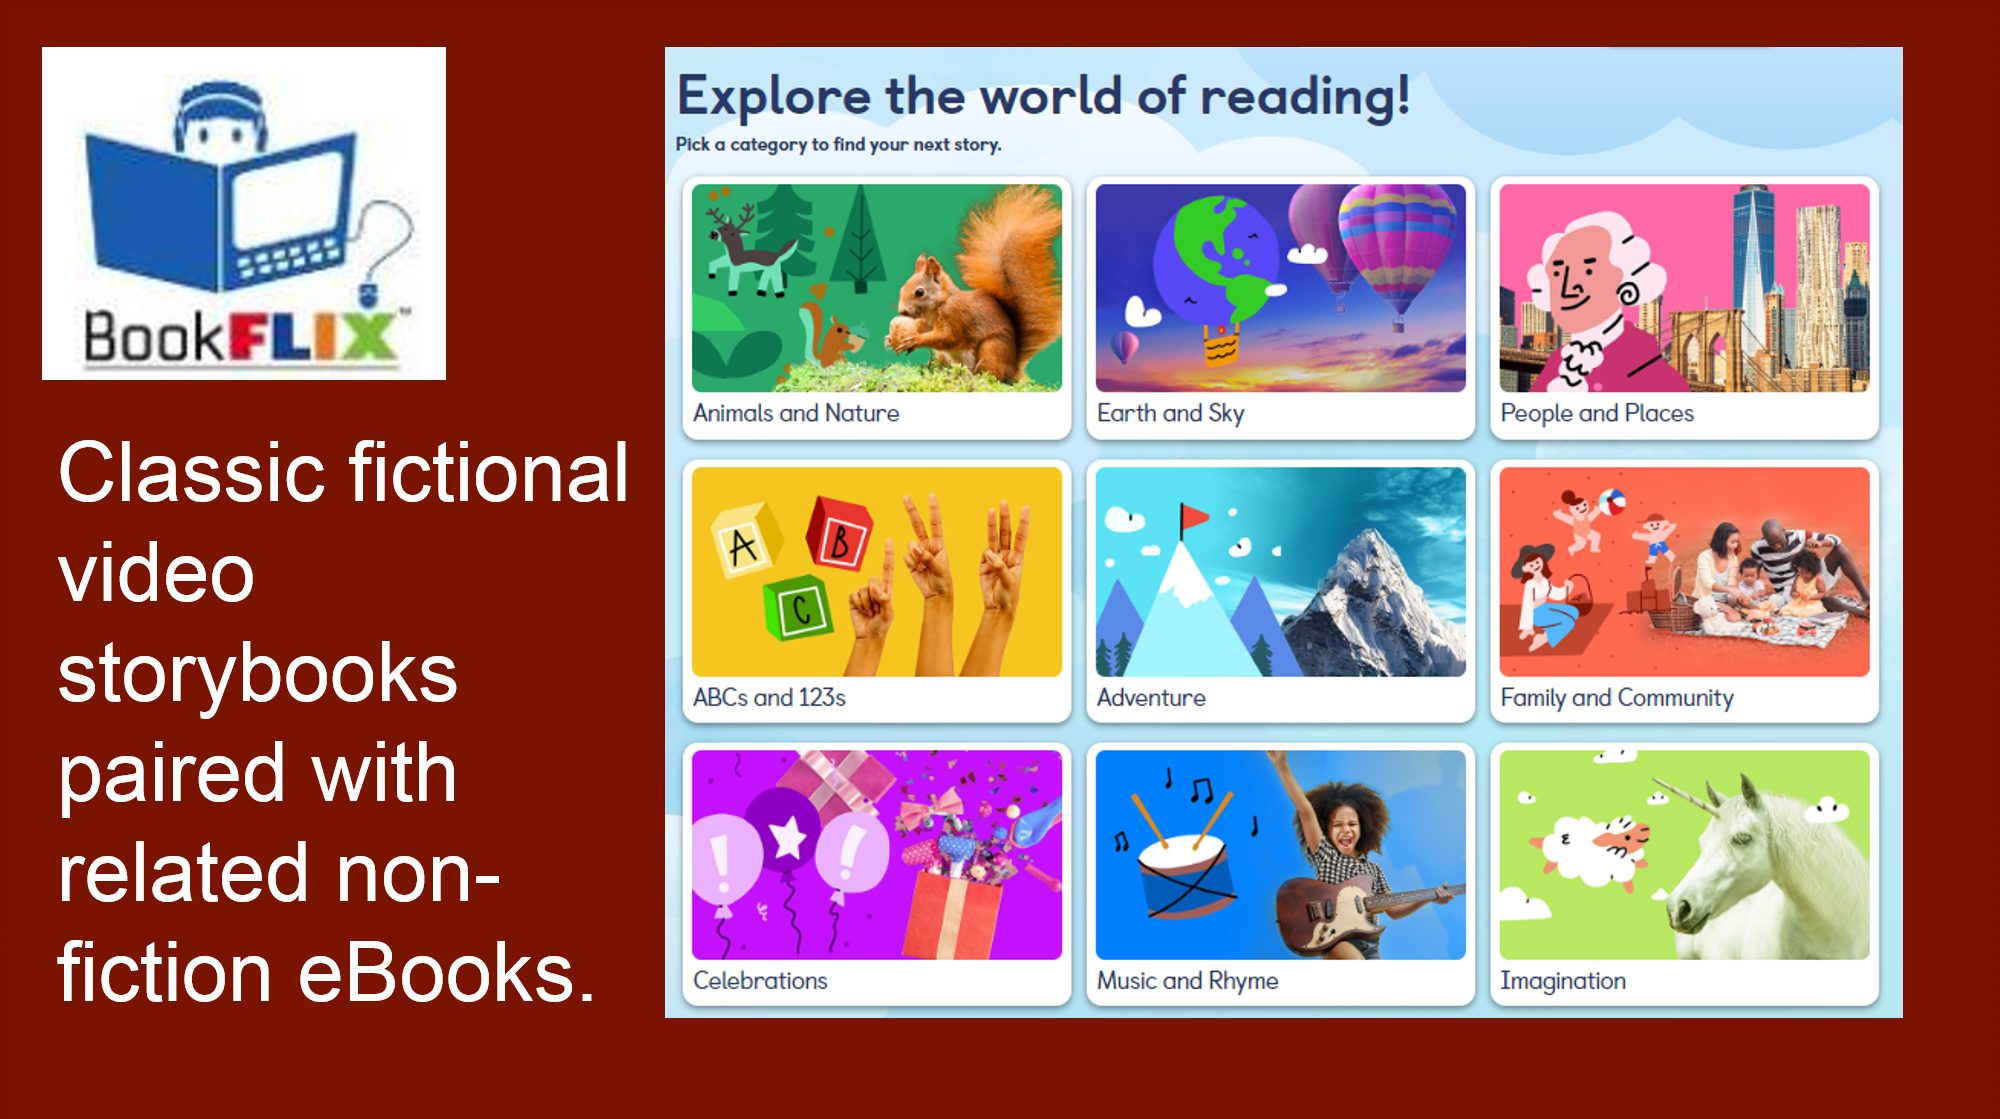 Classic fictional video storybooks paired with related non-fiction eBooks.